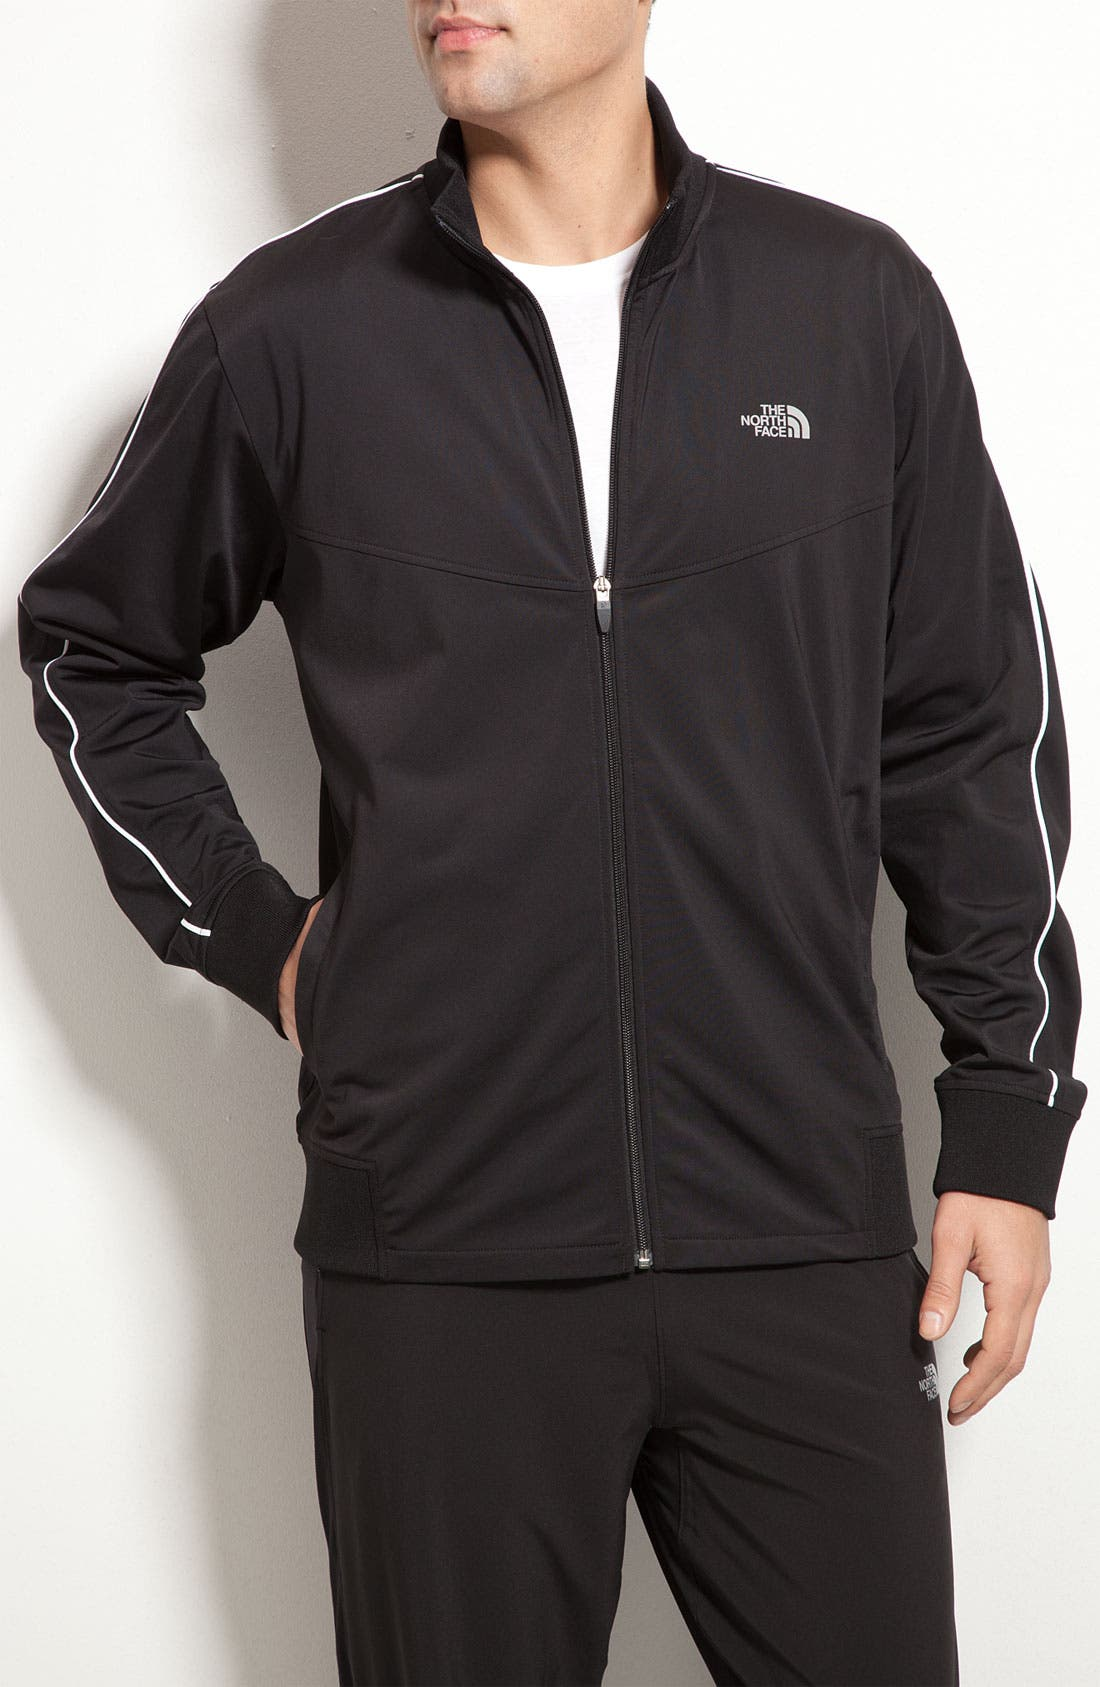 Alternate Image 1 Selected - The North Face 'Flex' Track Jacket